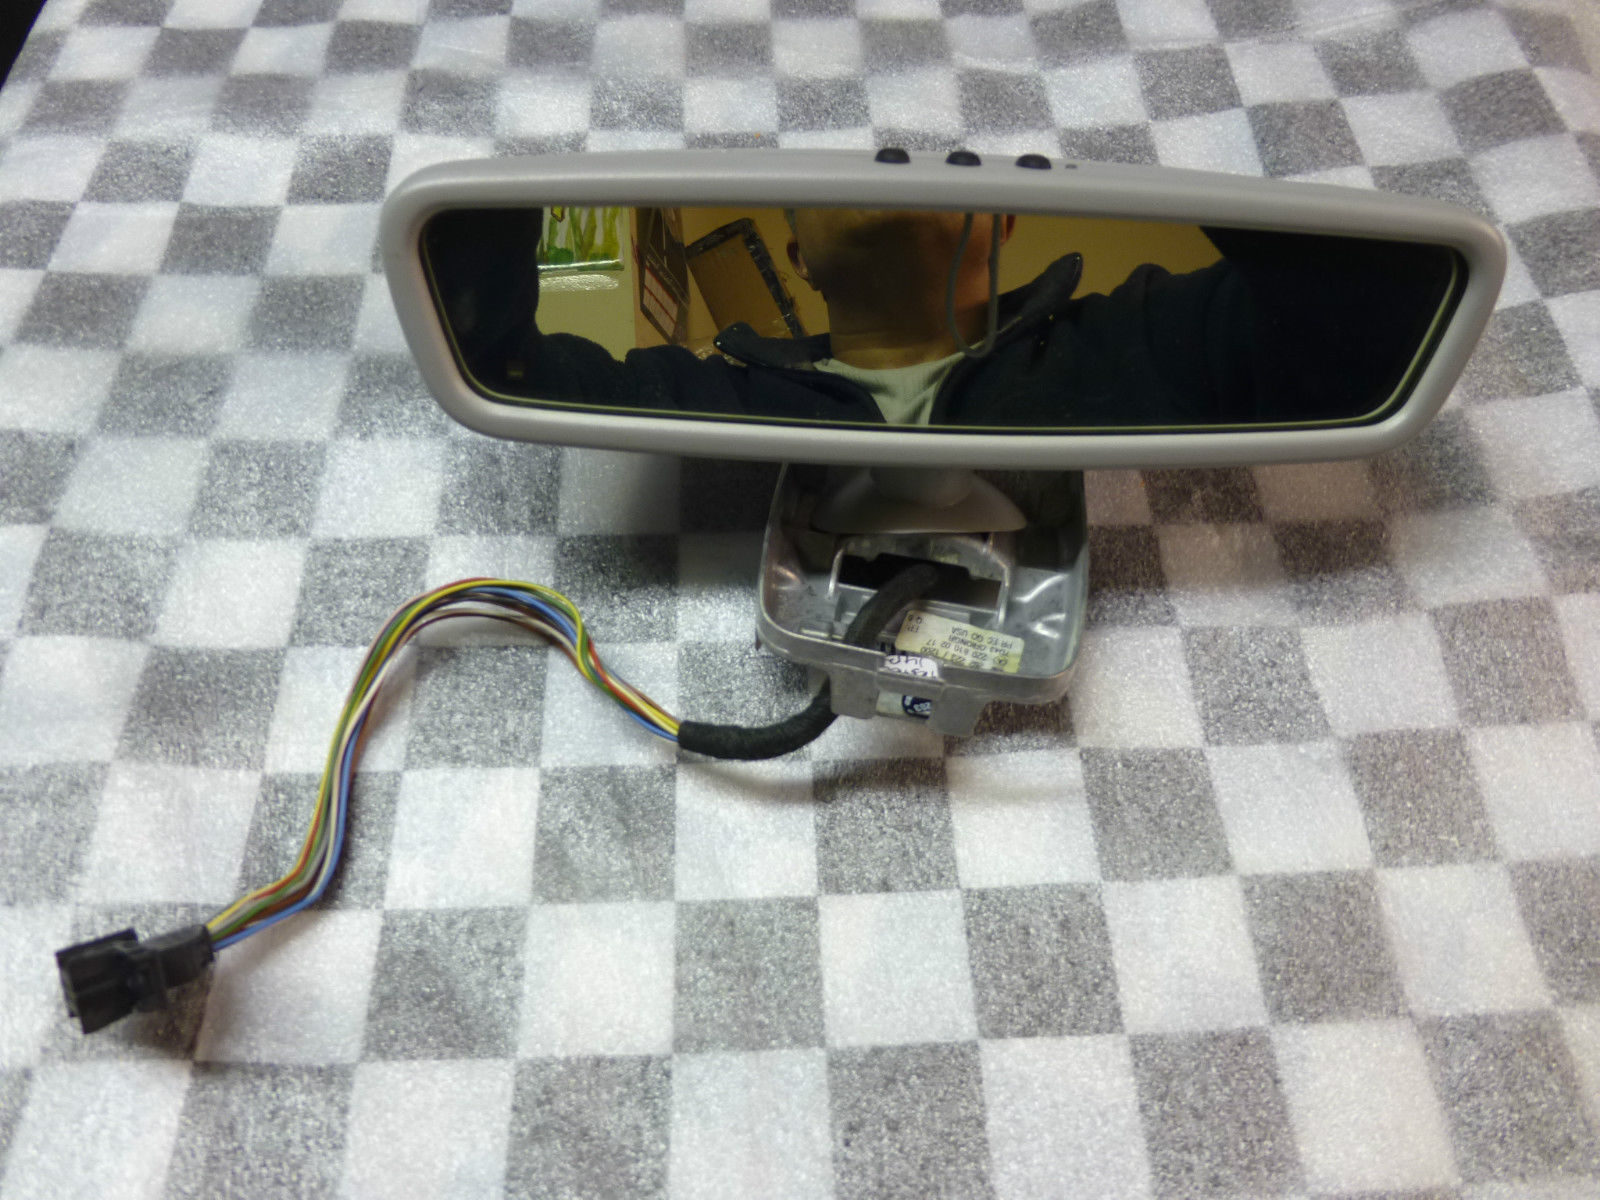 Mercedes Benz CL500 S55 AMG Inside Rear view Mirror A 2208102817 2208100217 OEM